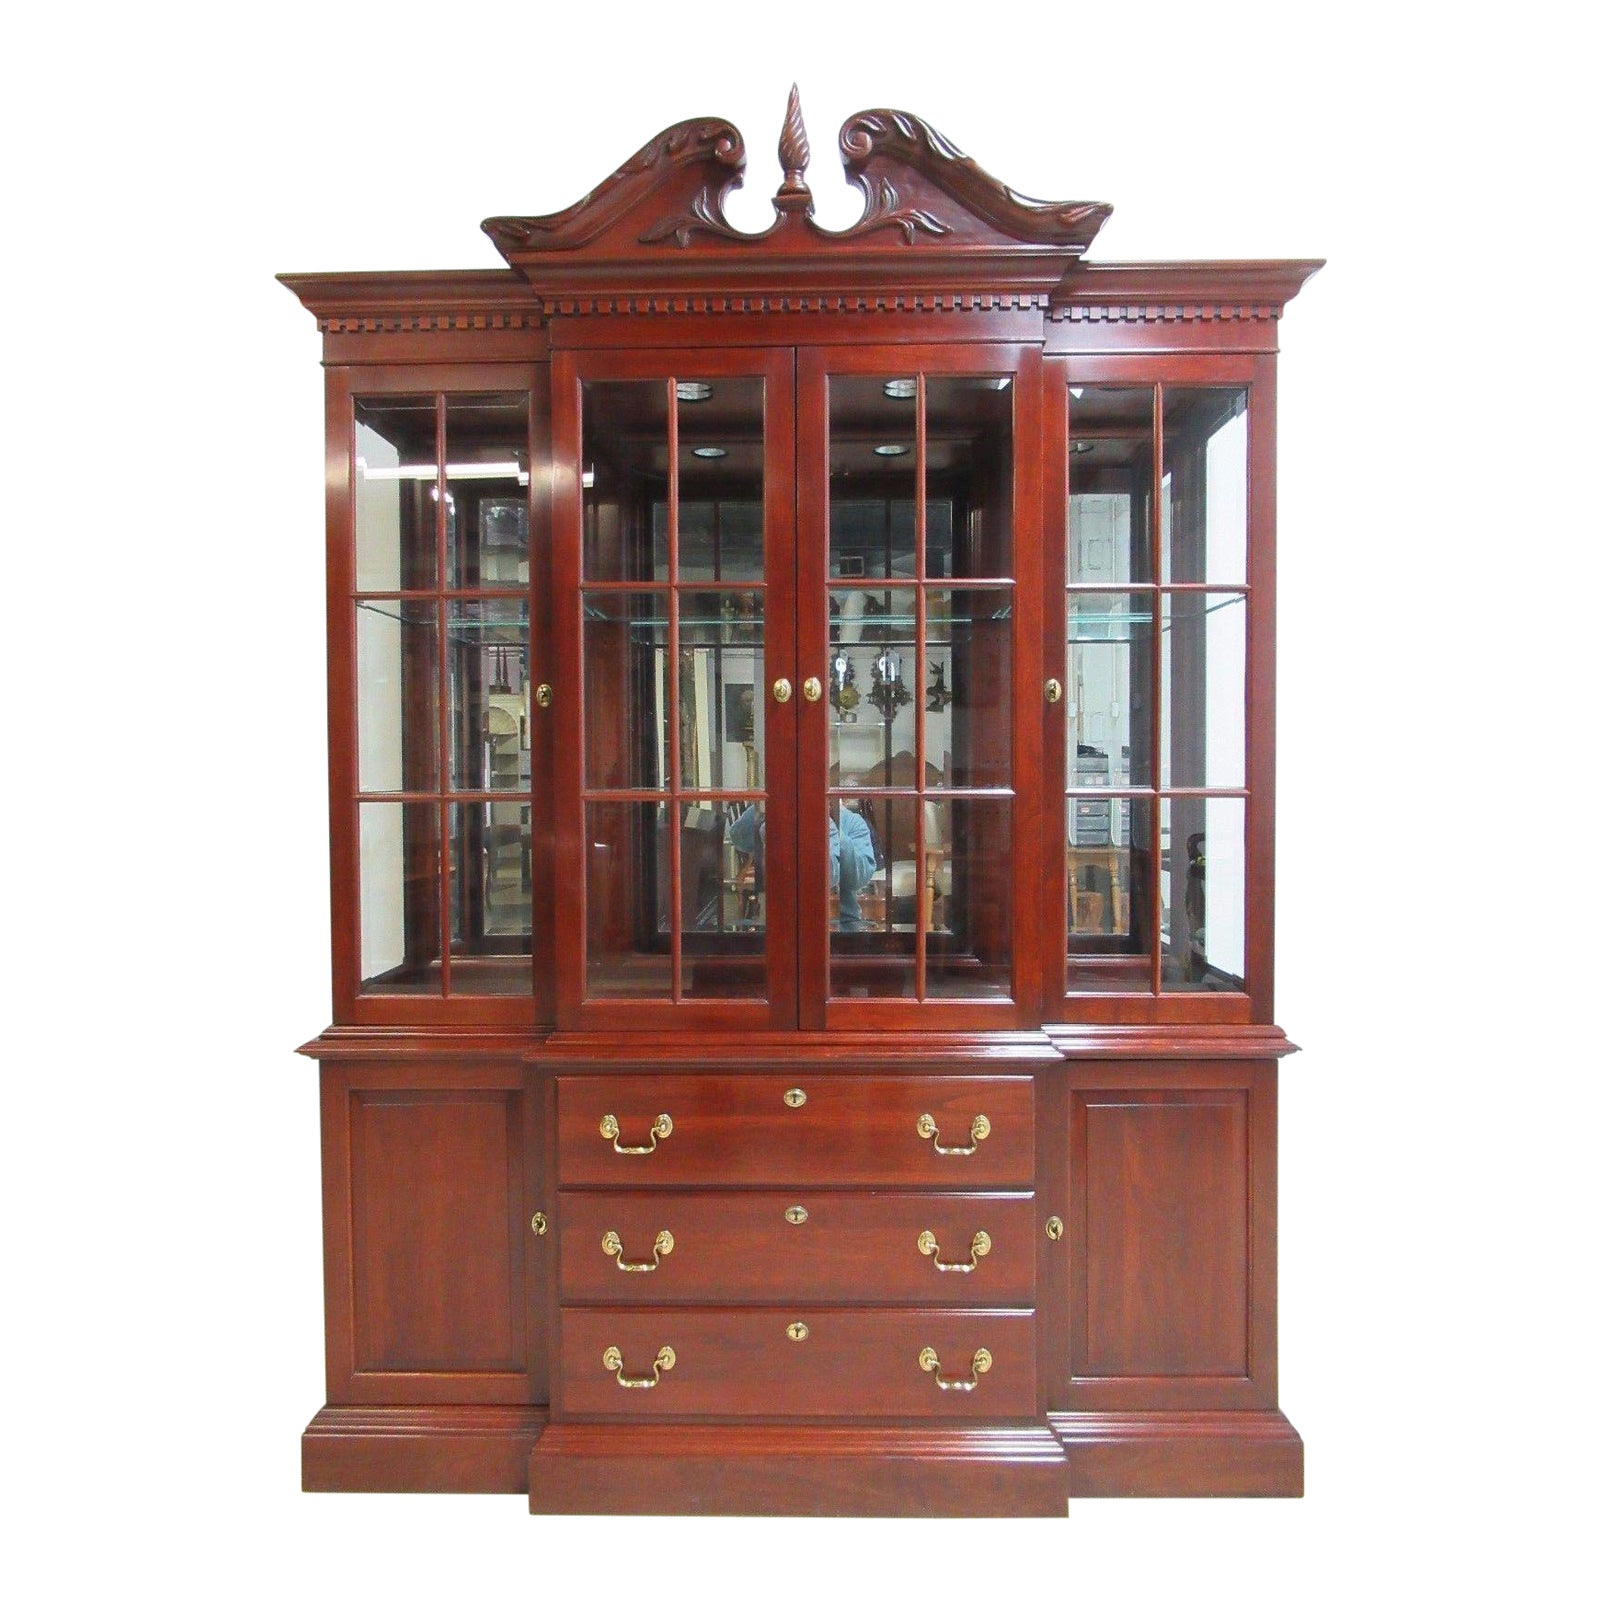 Knob creek cherry chippendale breakfront china cabinet hutch chairish